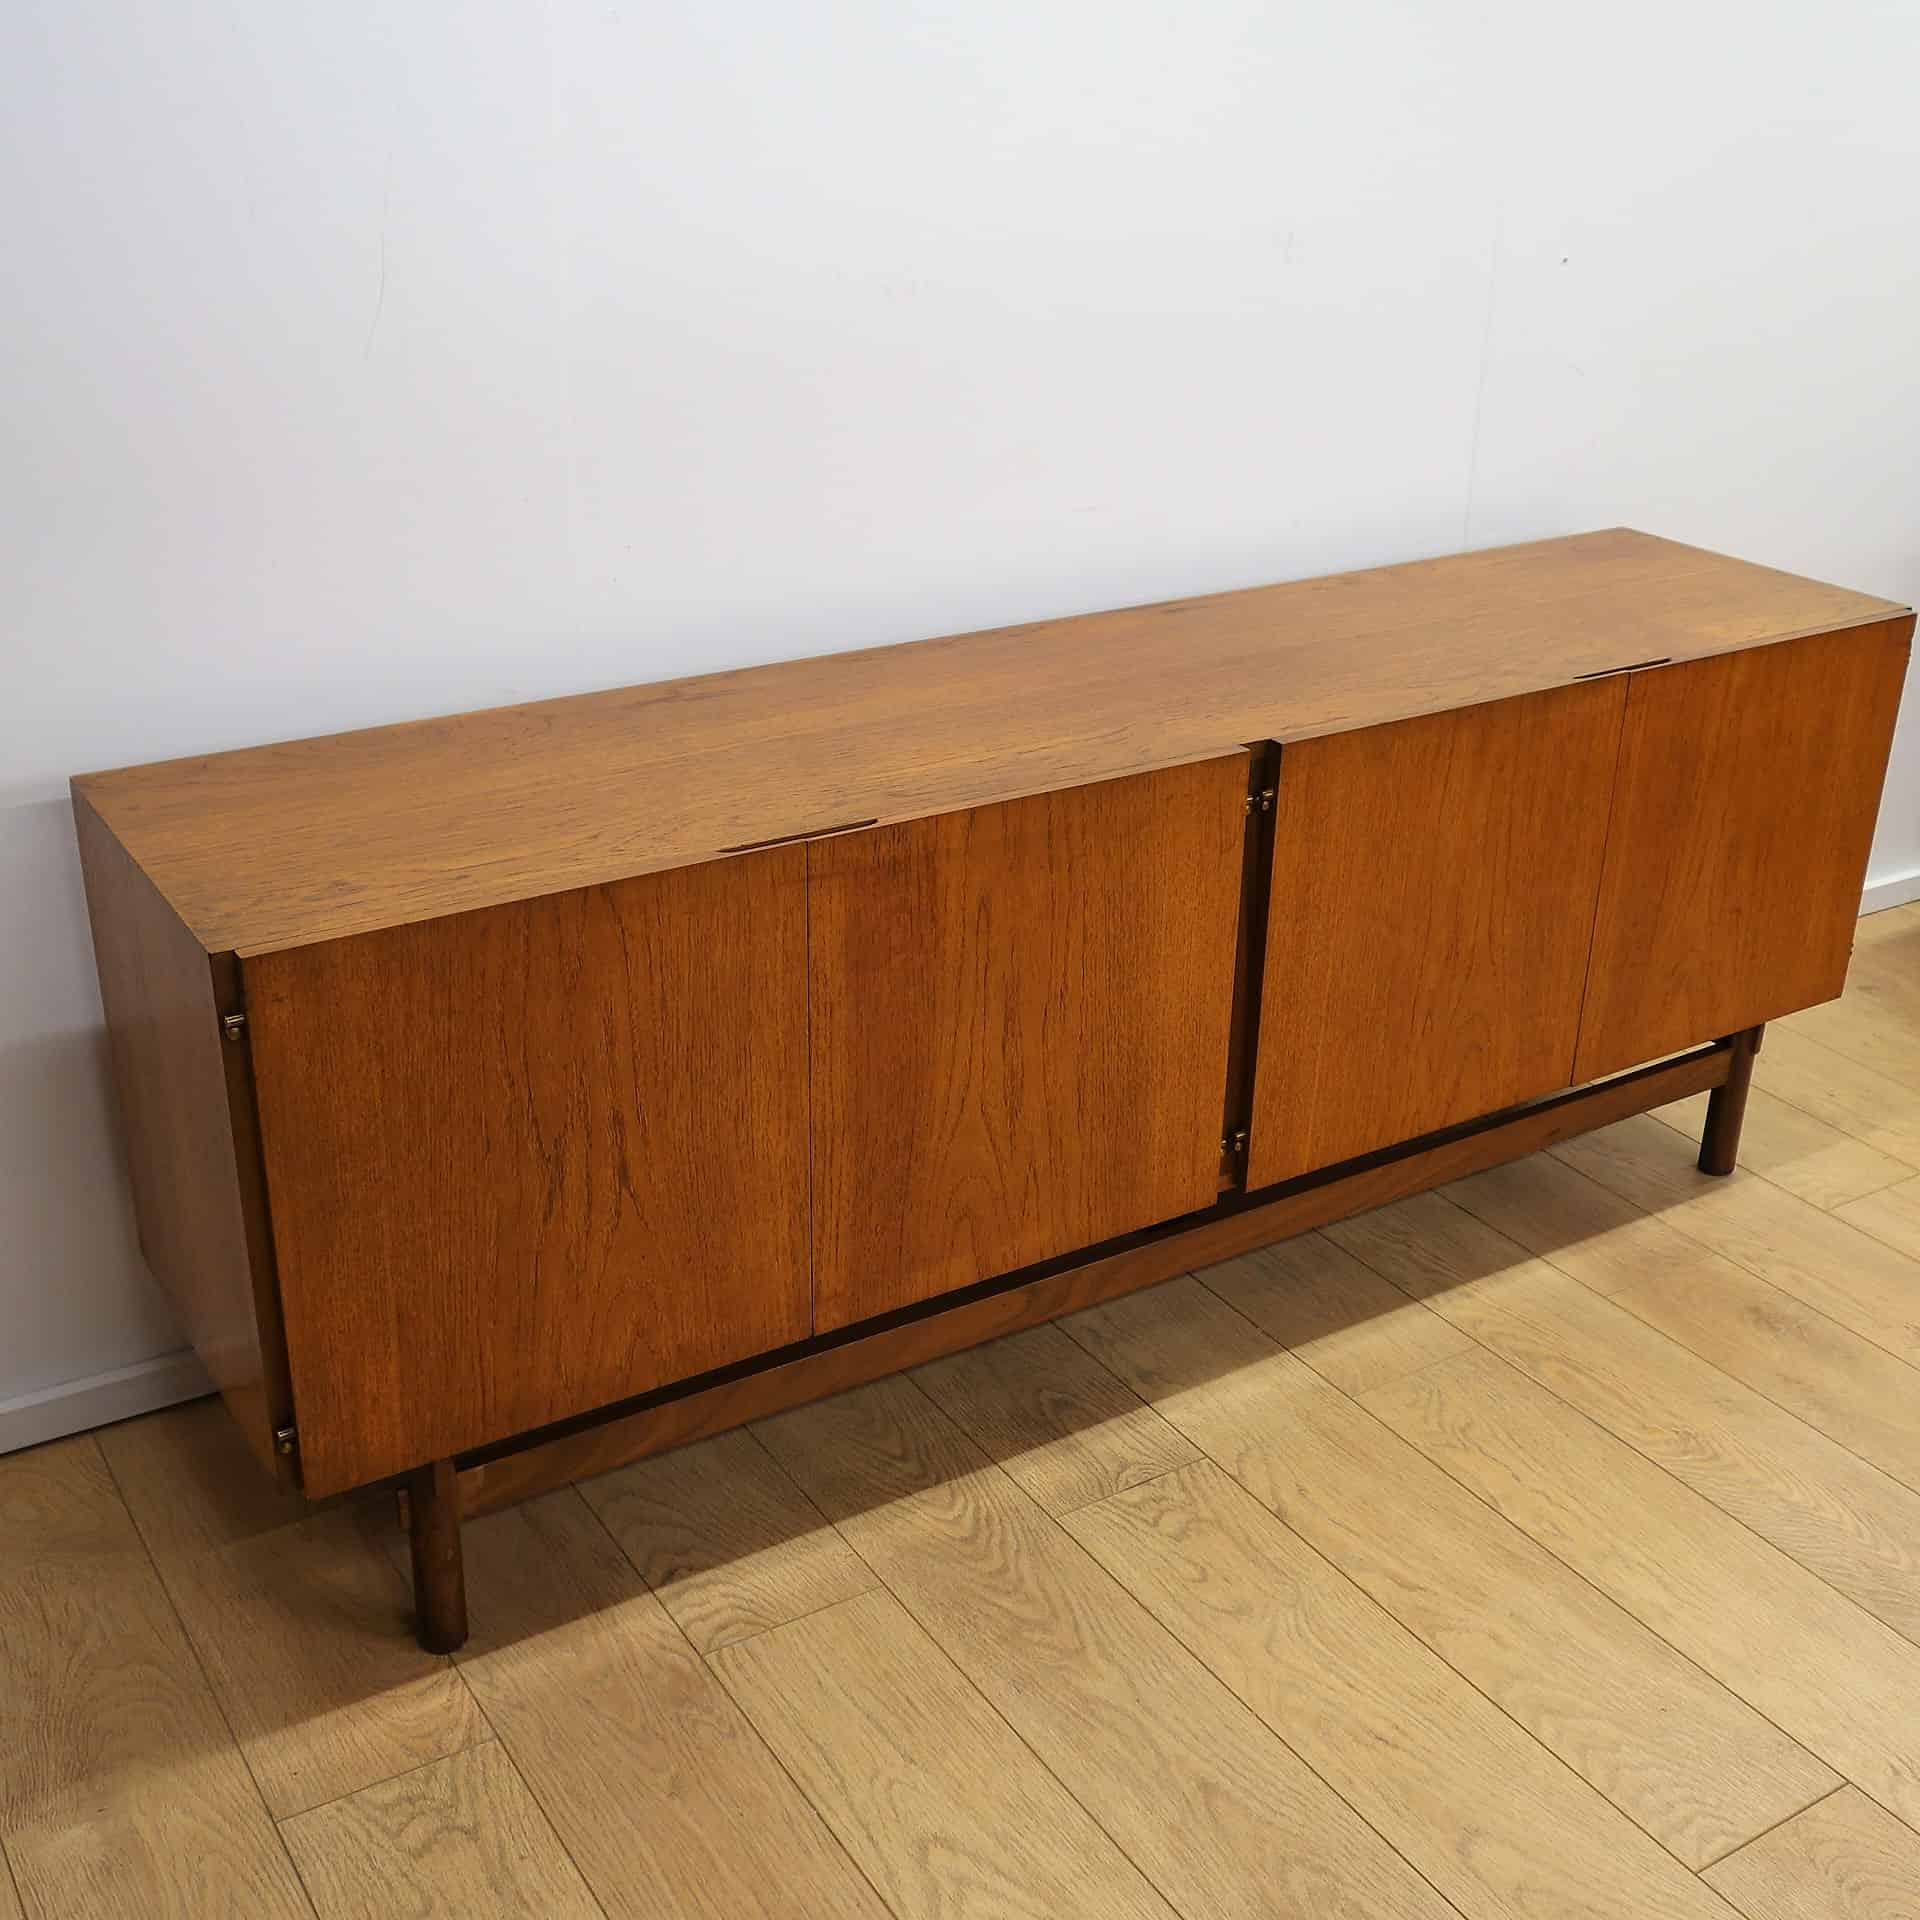 Parrish Sideboards With Regard To Well Known 1960S Teak Sideboardvanson – Mark Parrish Mid Century Modern (Gallery 5 of 20)